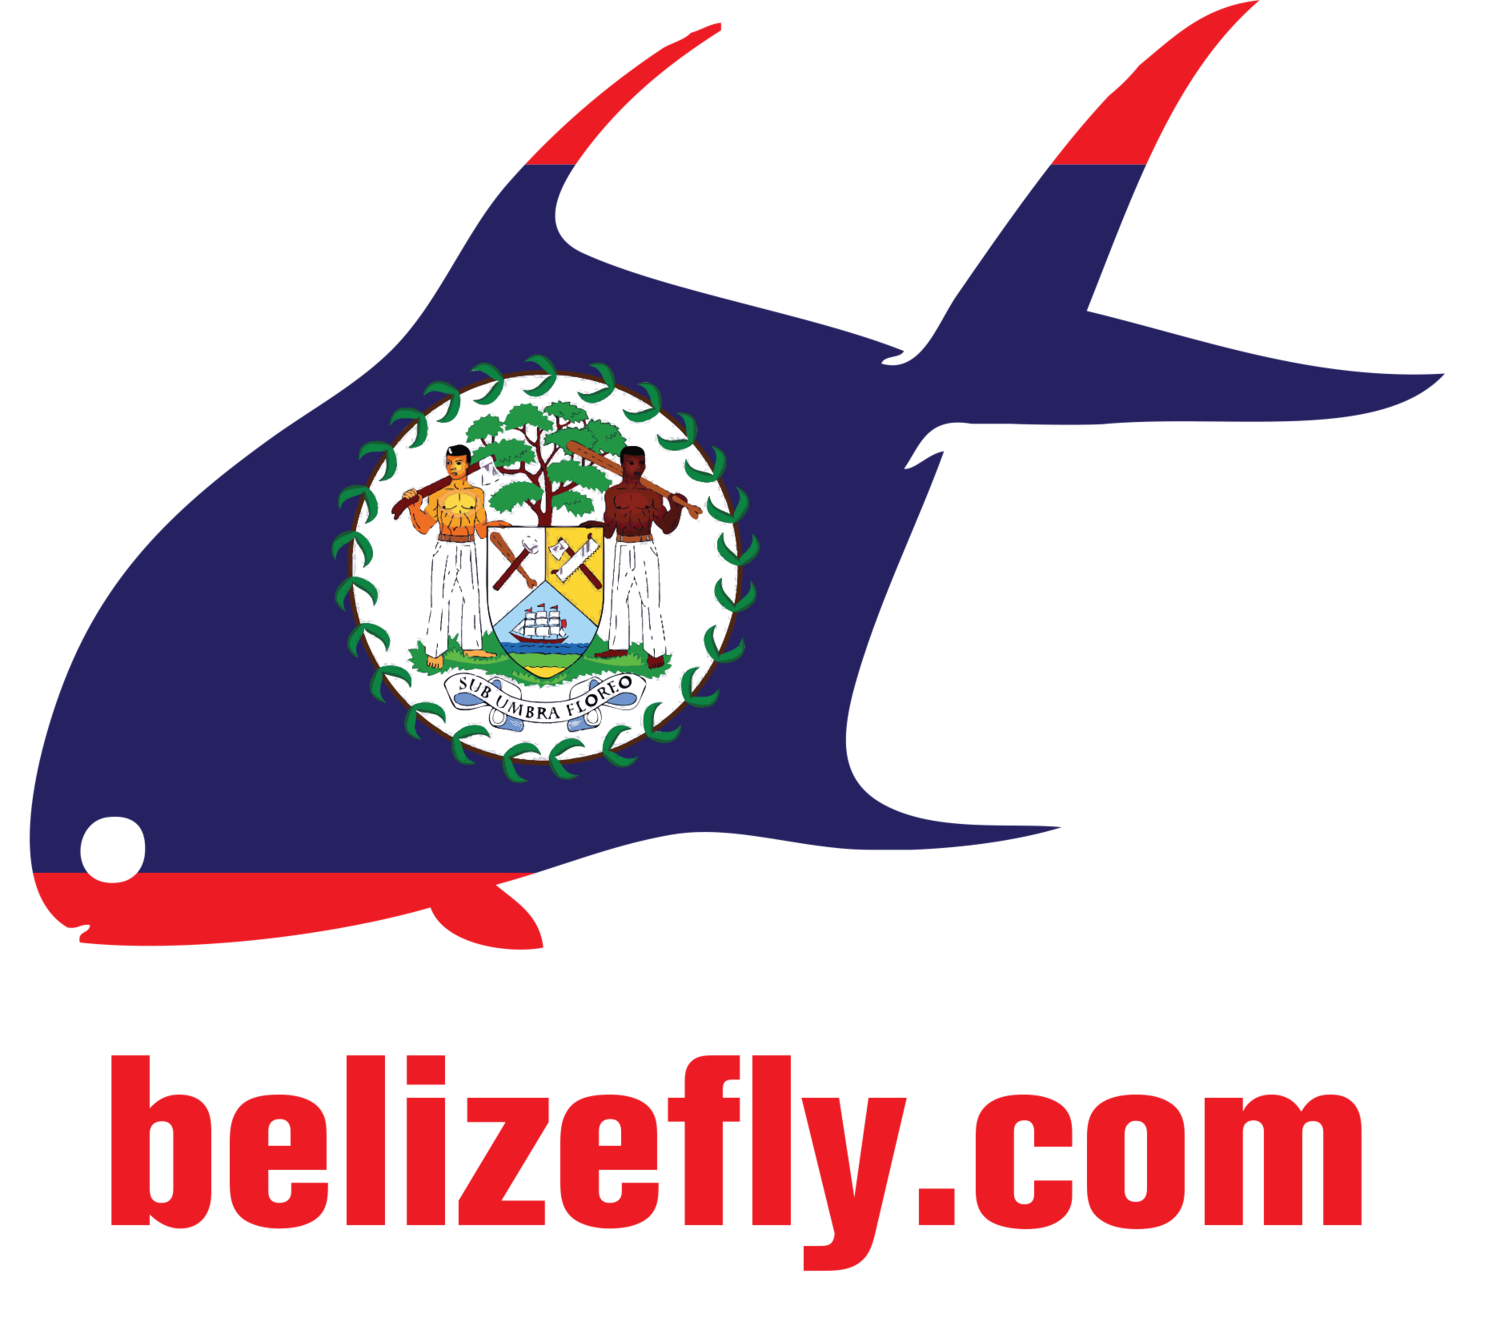 Belize Fly Fishing - Guides - Flies - Gear